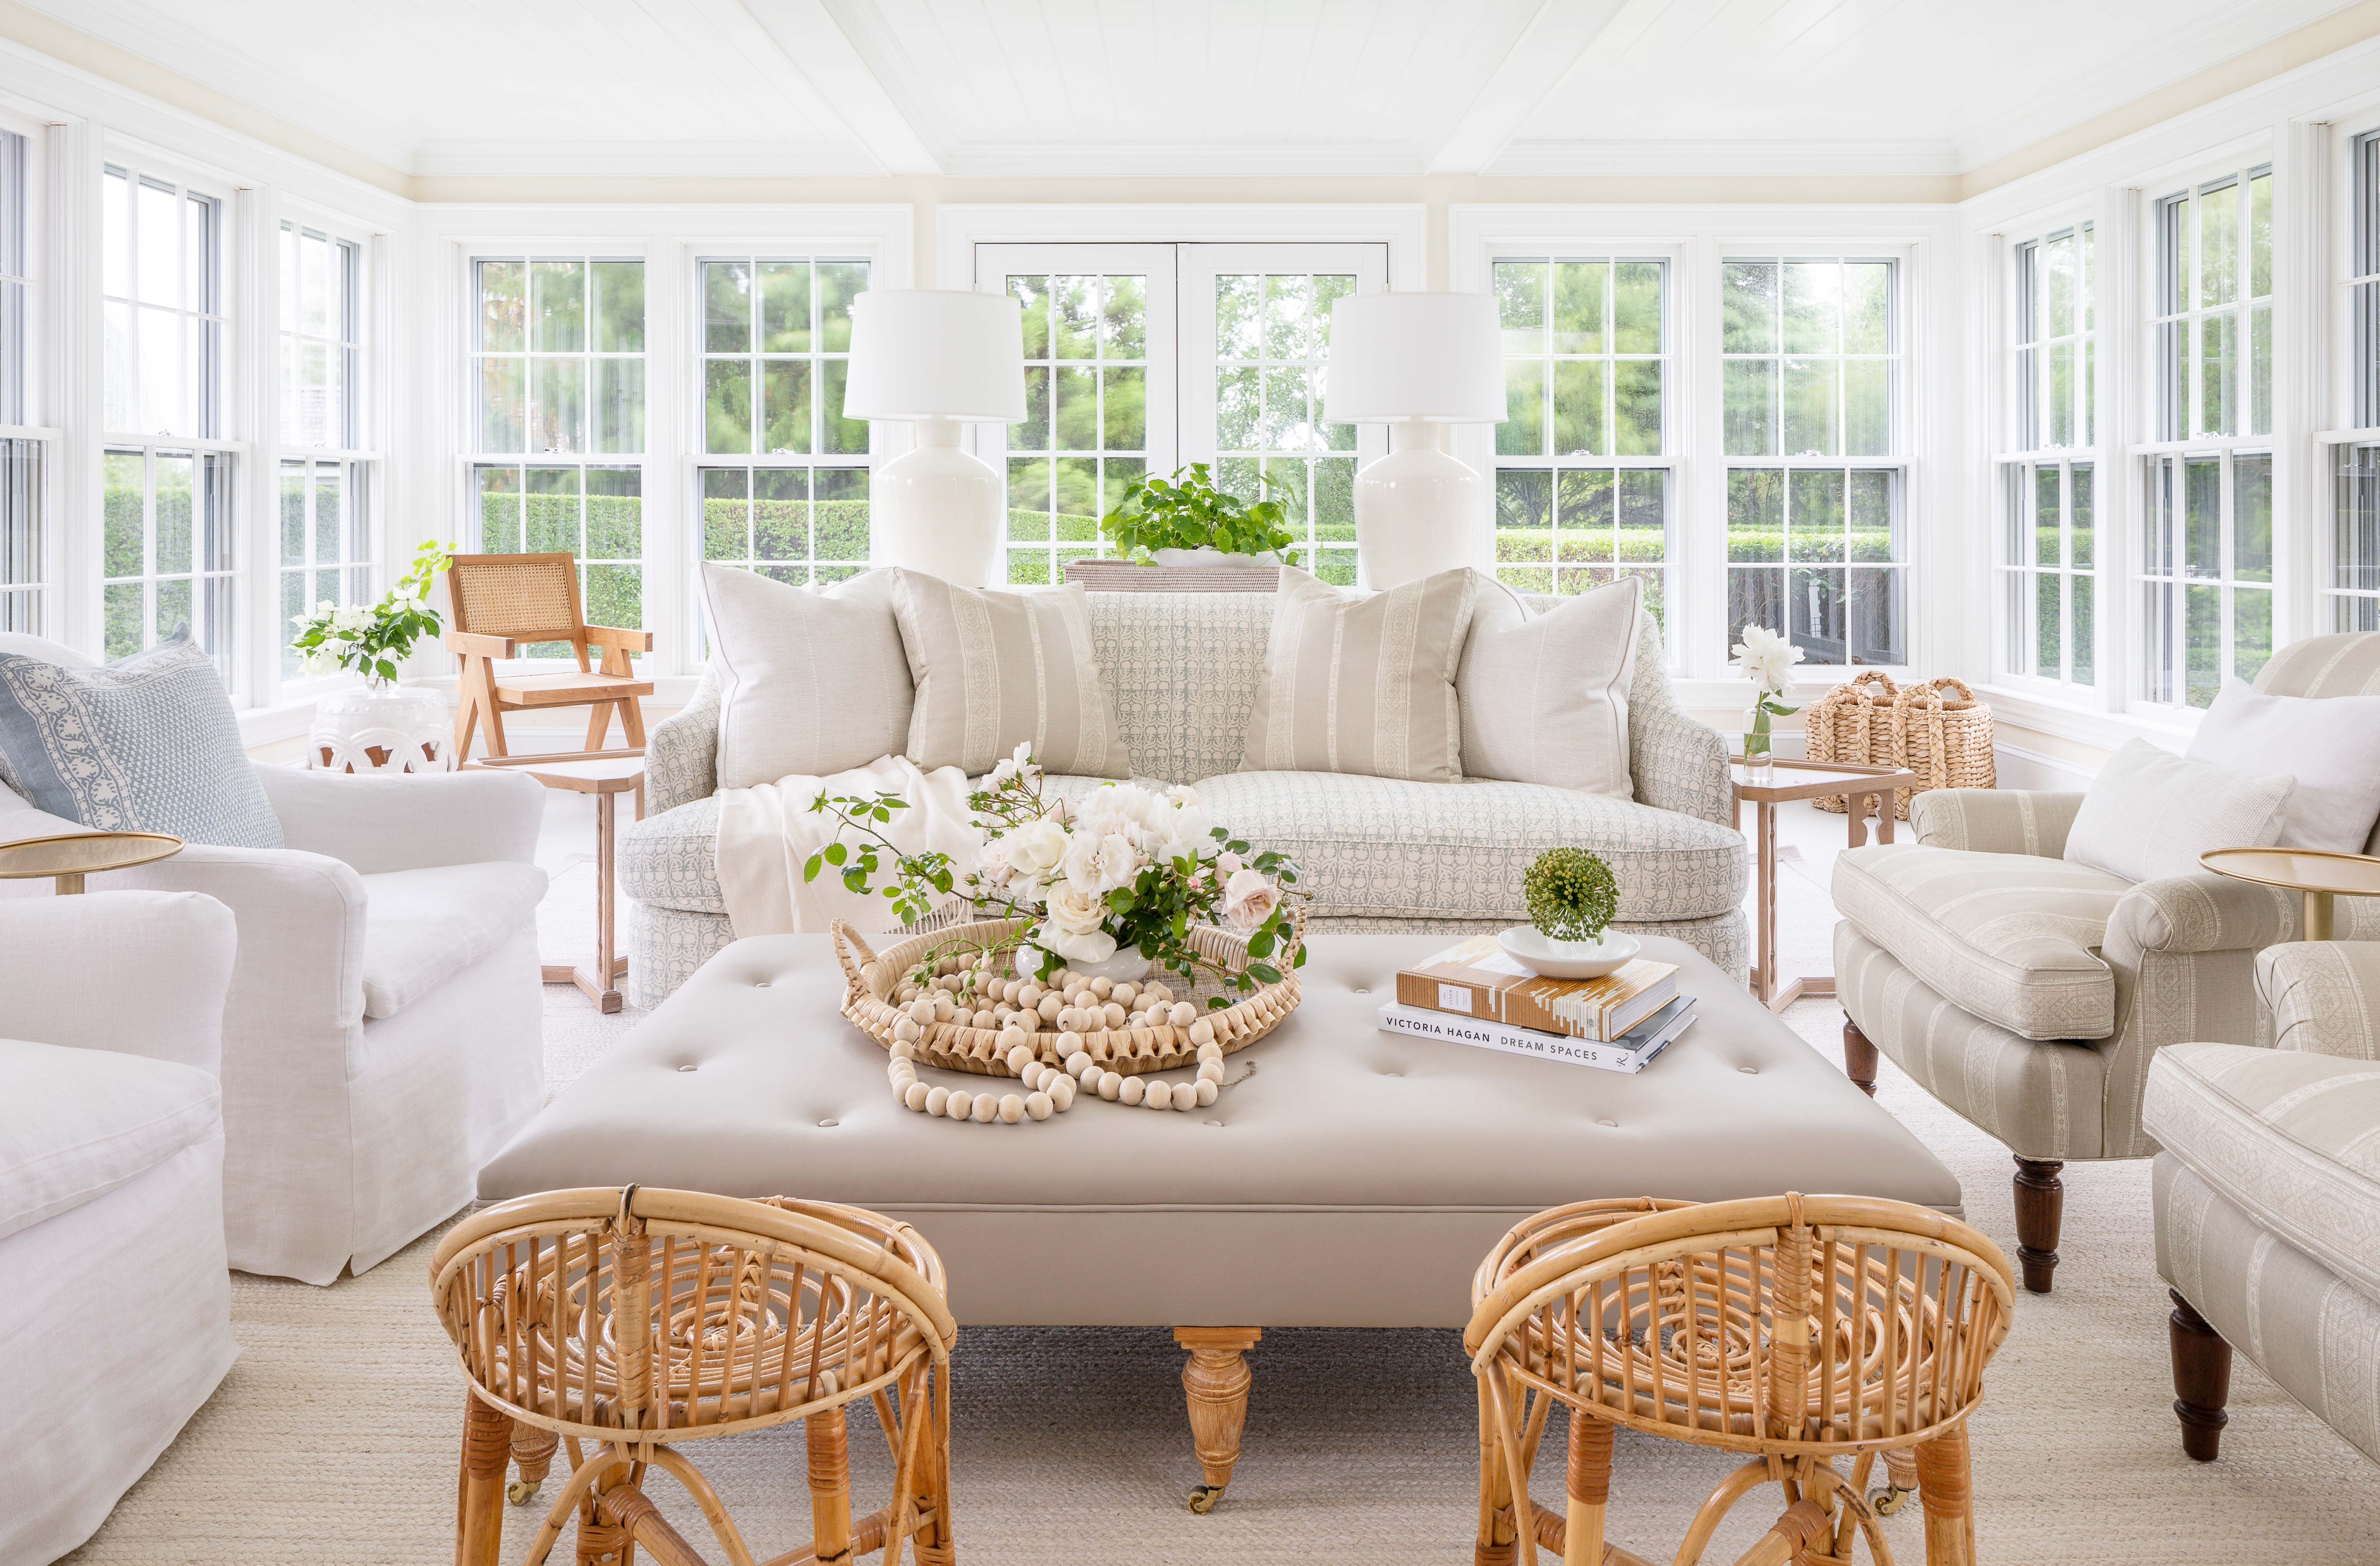 Home Decorating Trends 2020 , House Beautiful Next Wave